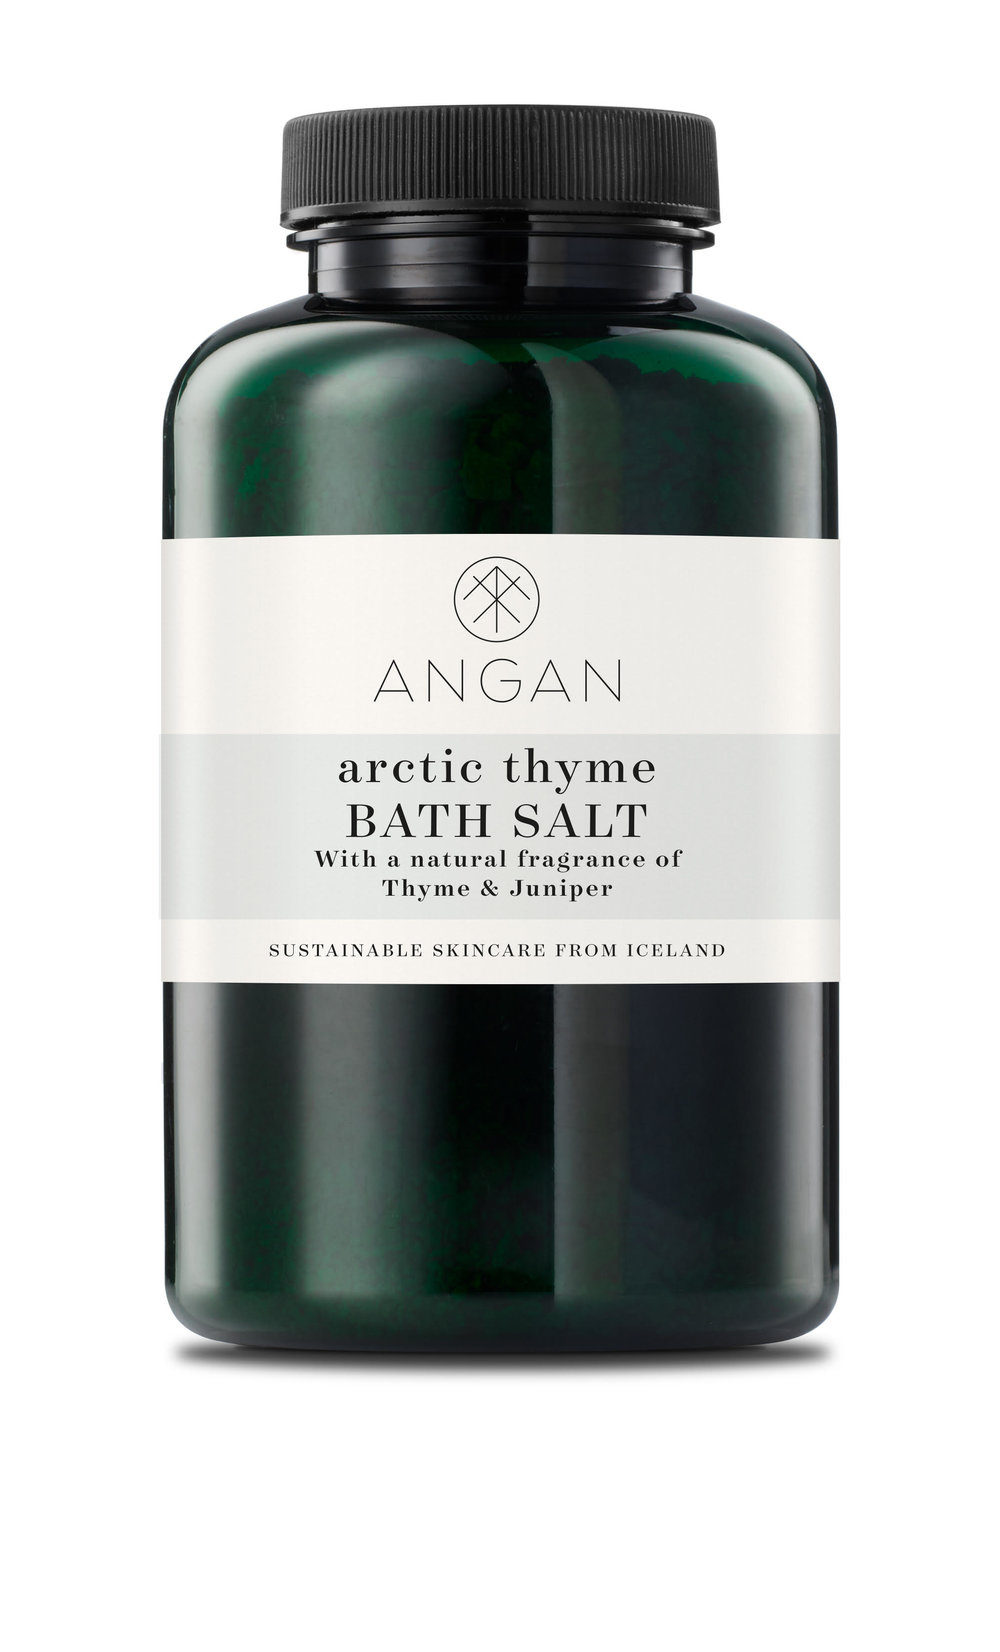 RELAXING   BATH SALT with arctic thyme